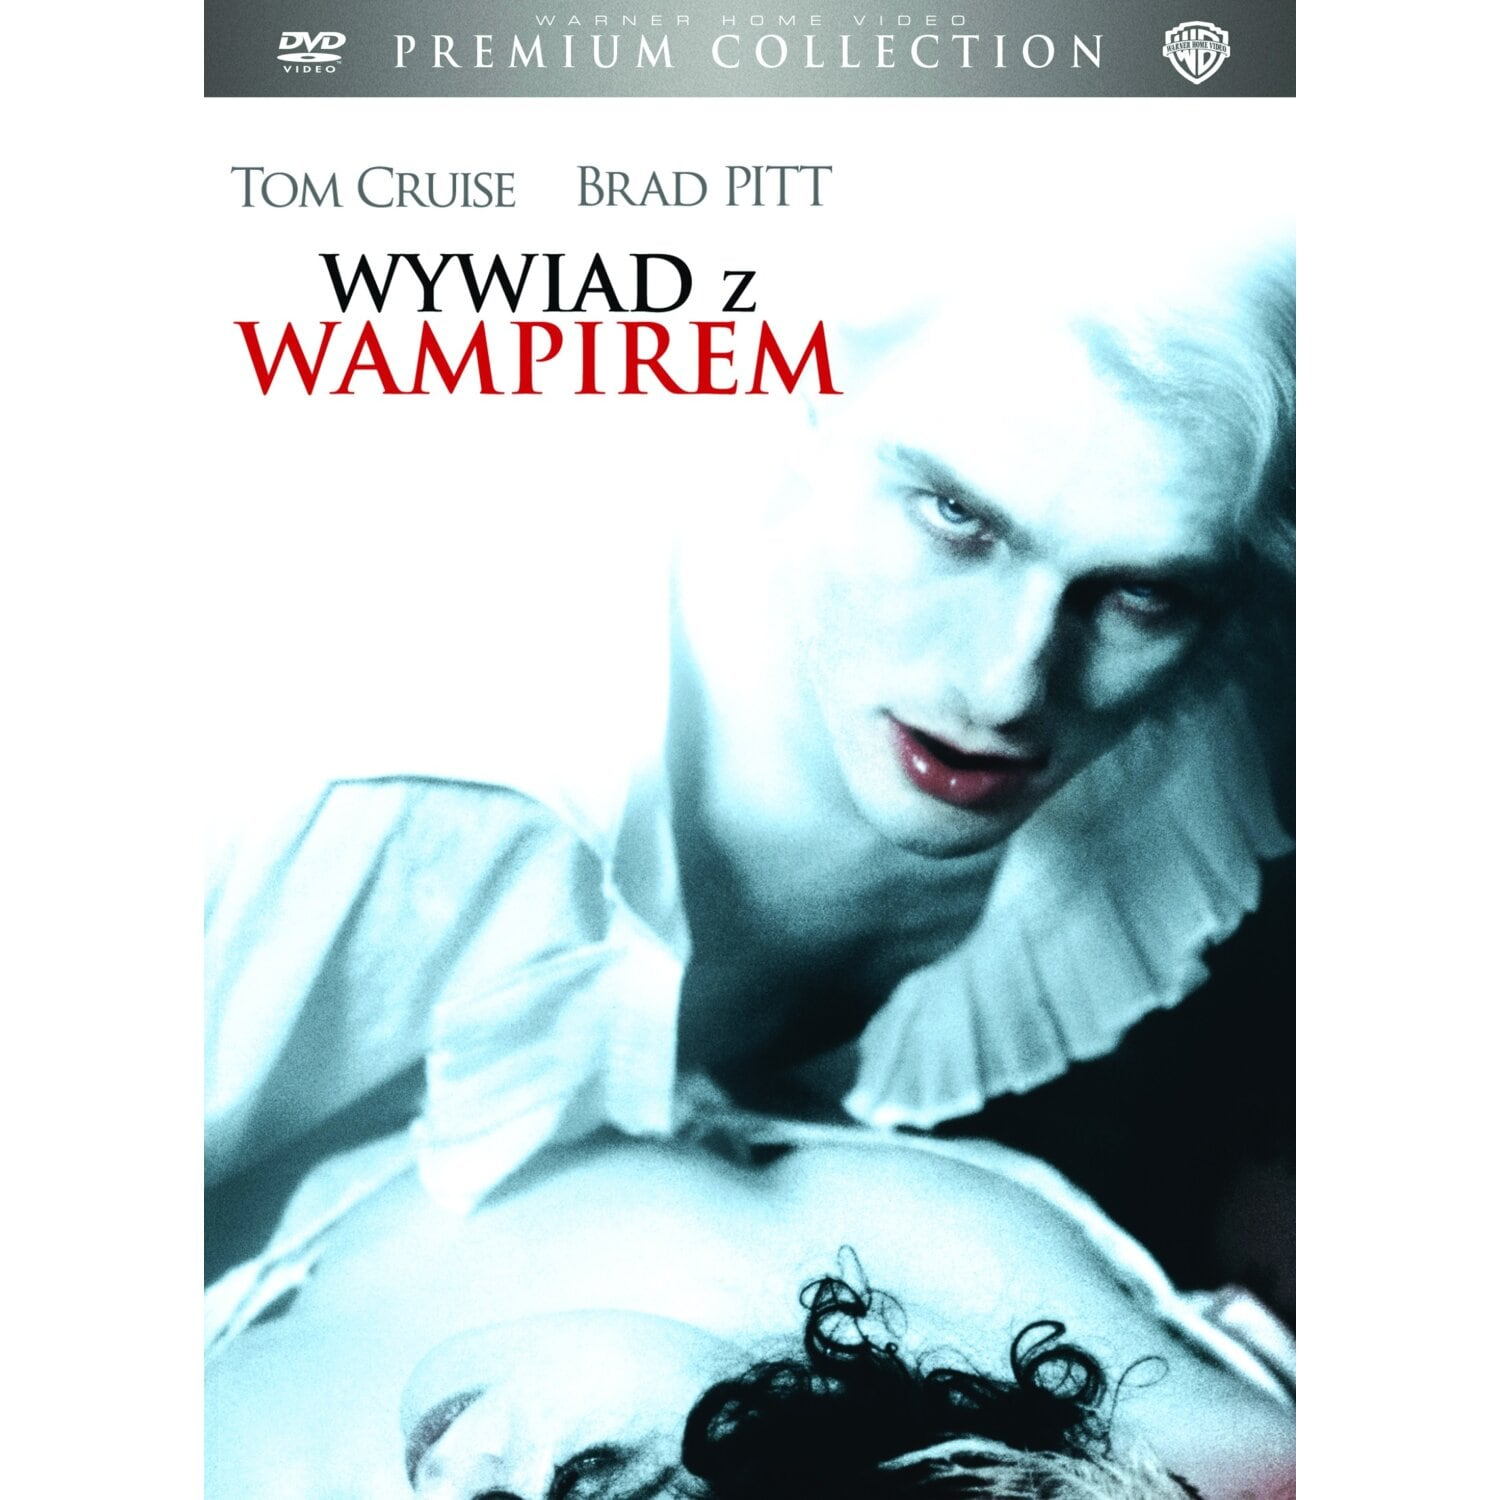 Wywiad z wampirem (Premium Collection)